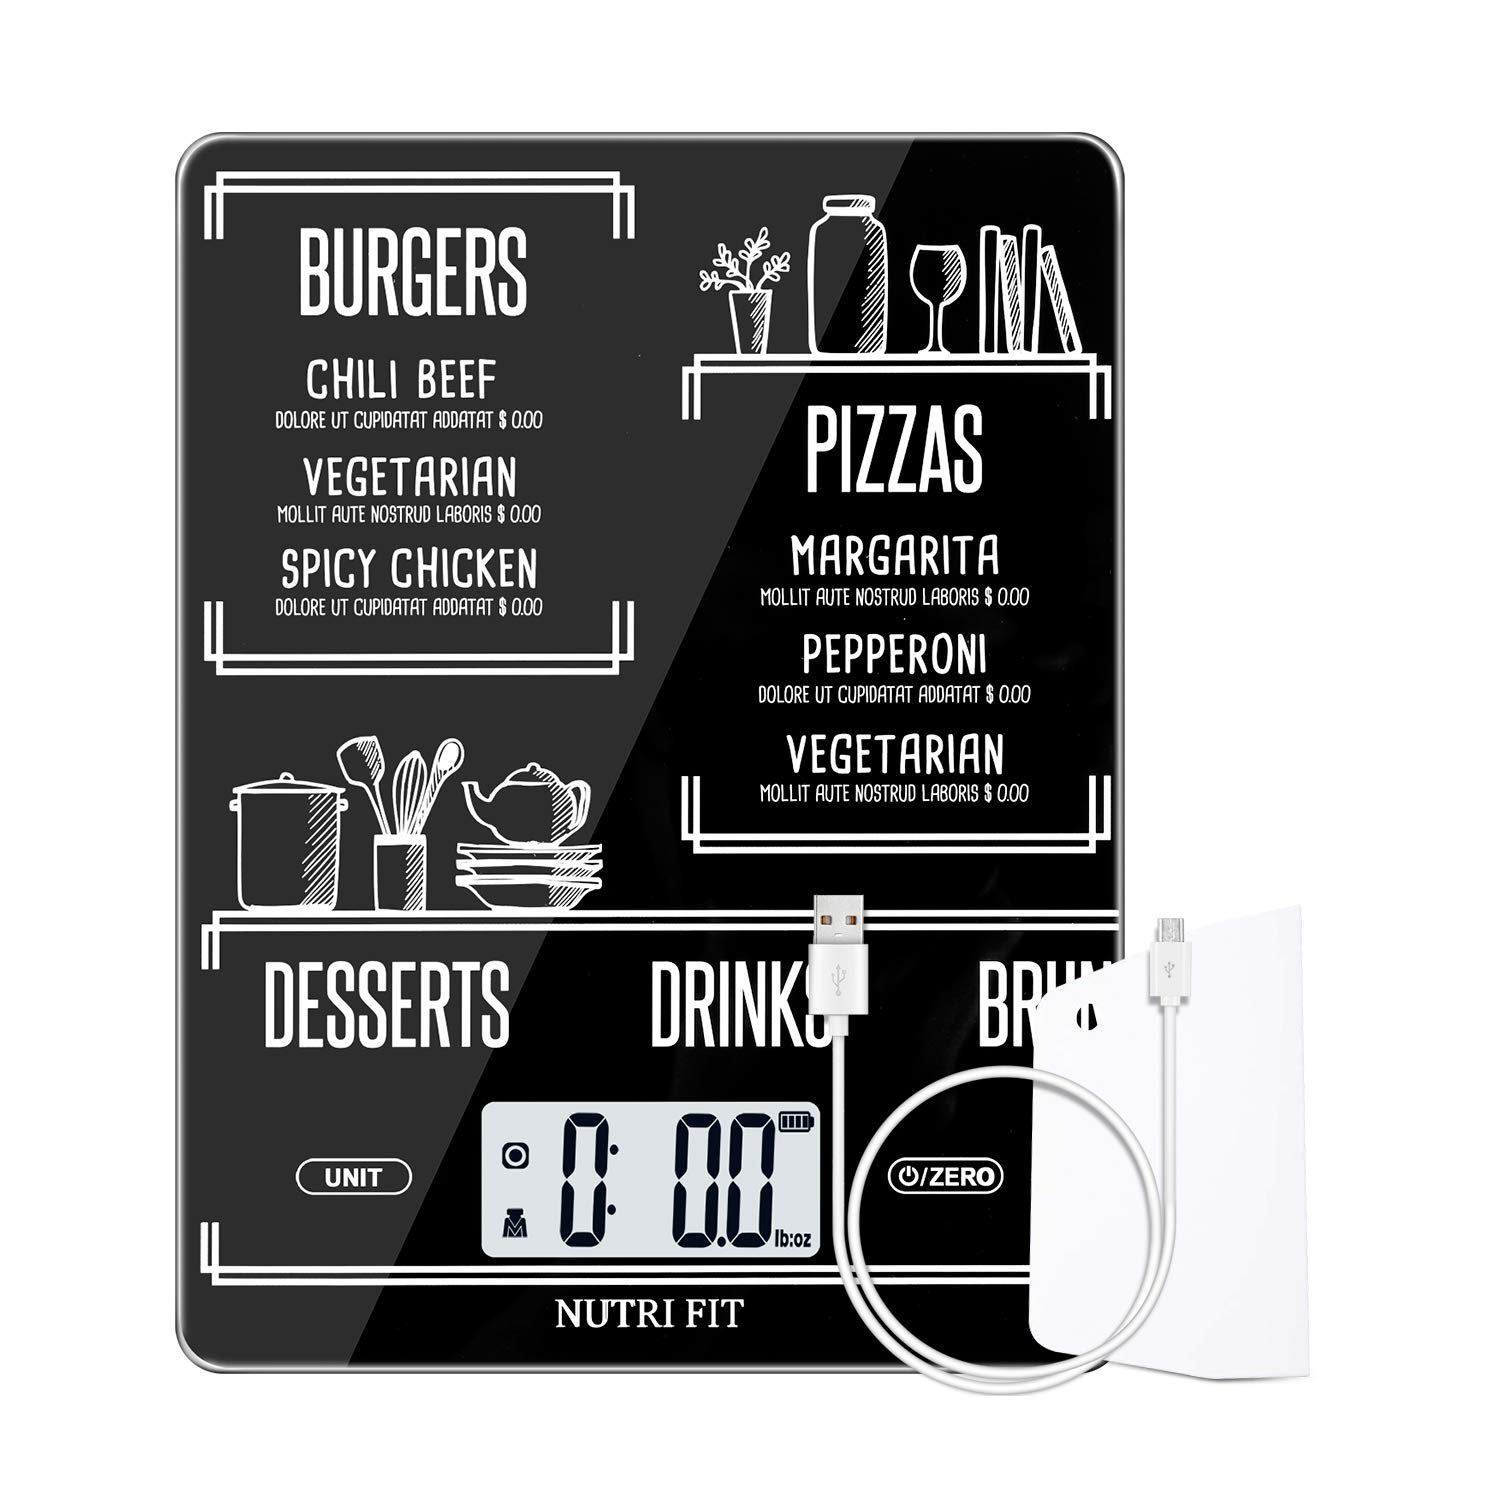 Rechargeable Food Scale Digital Kitchen Scale Multifunction with Dough Scraper by NUTRI FIT, High Accuracy, Portable and Tare Function, 11lb/5kg Baking & Cooking Scale, Black